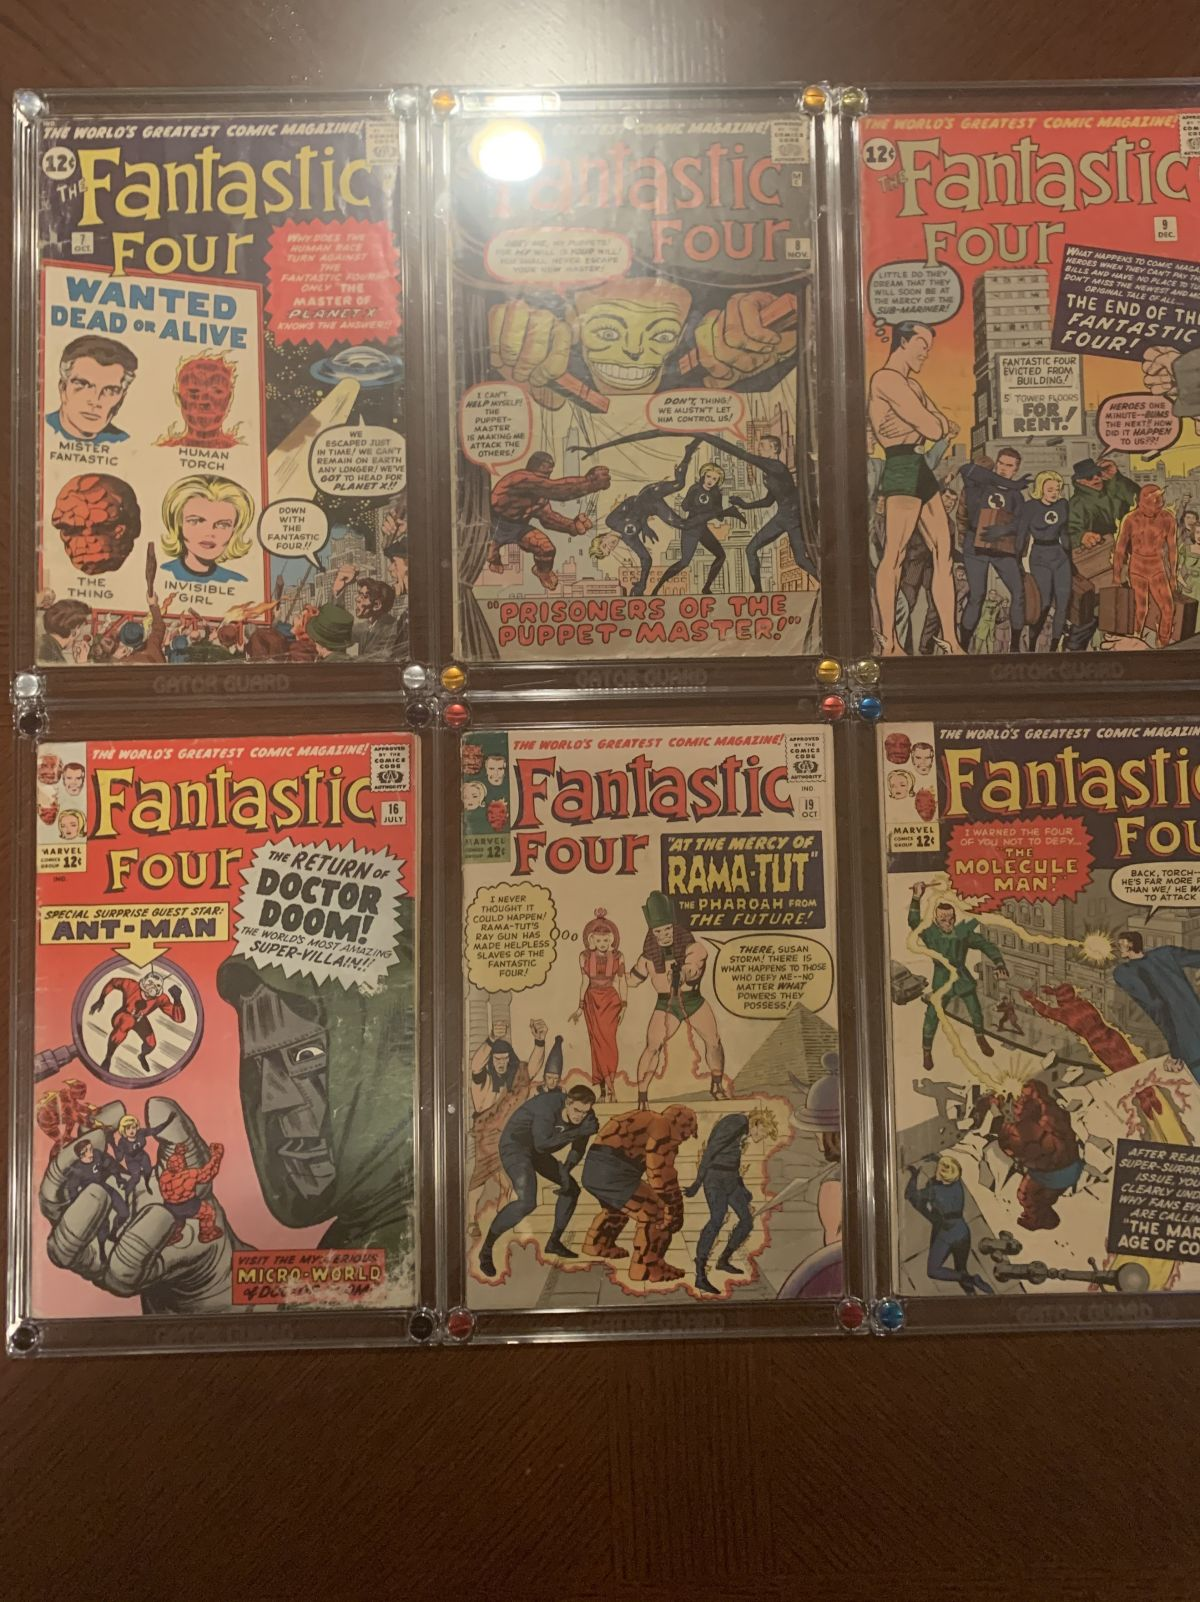 Fantastic Four 7 8 9 16 19 20 For Sale On Ebay 2 0 4 5 Cases Not Included Comics Market Sales Advertising Ebay Dealers Etc Cgc Comic Book Collectors Chat Boards